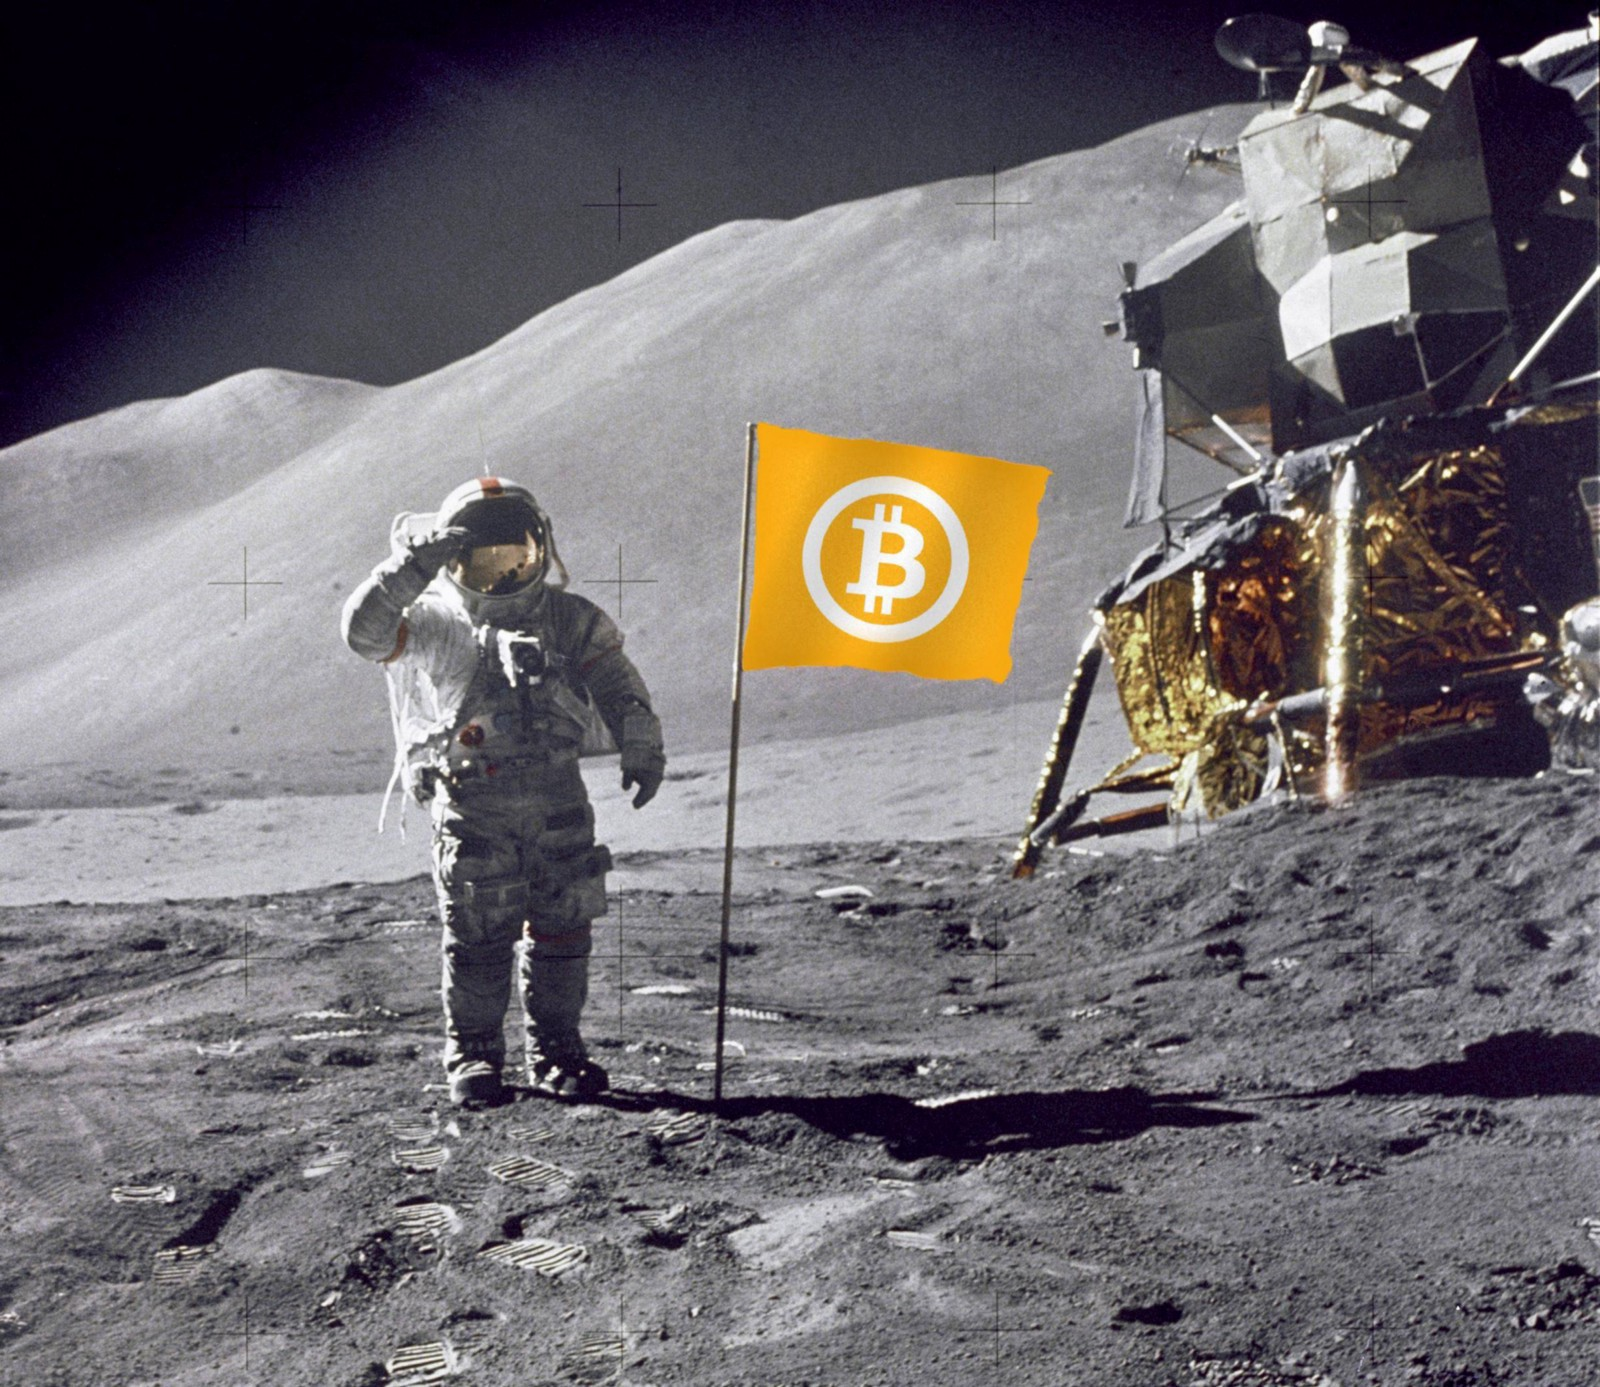 /post-bitcoin-maximalism-19f392610d67 feature image